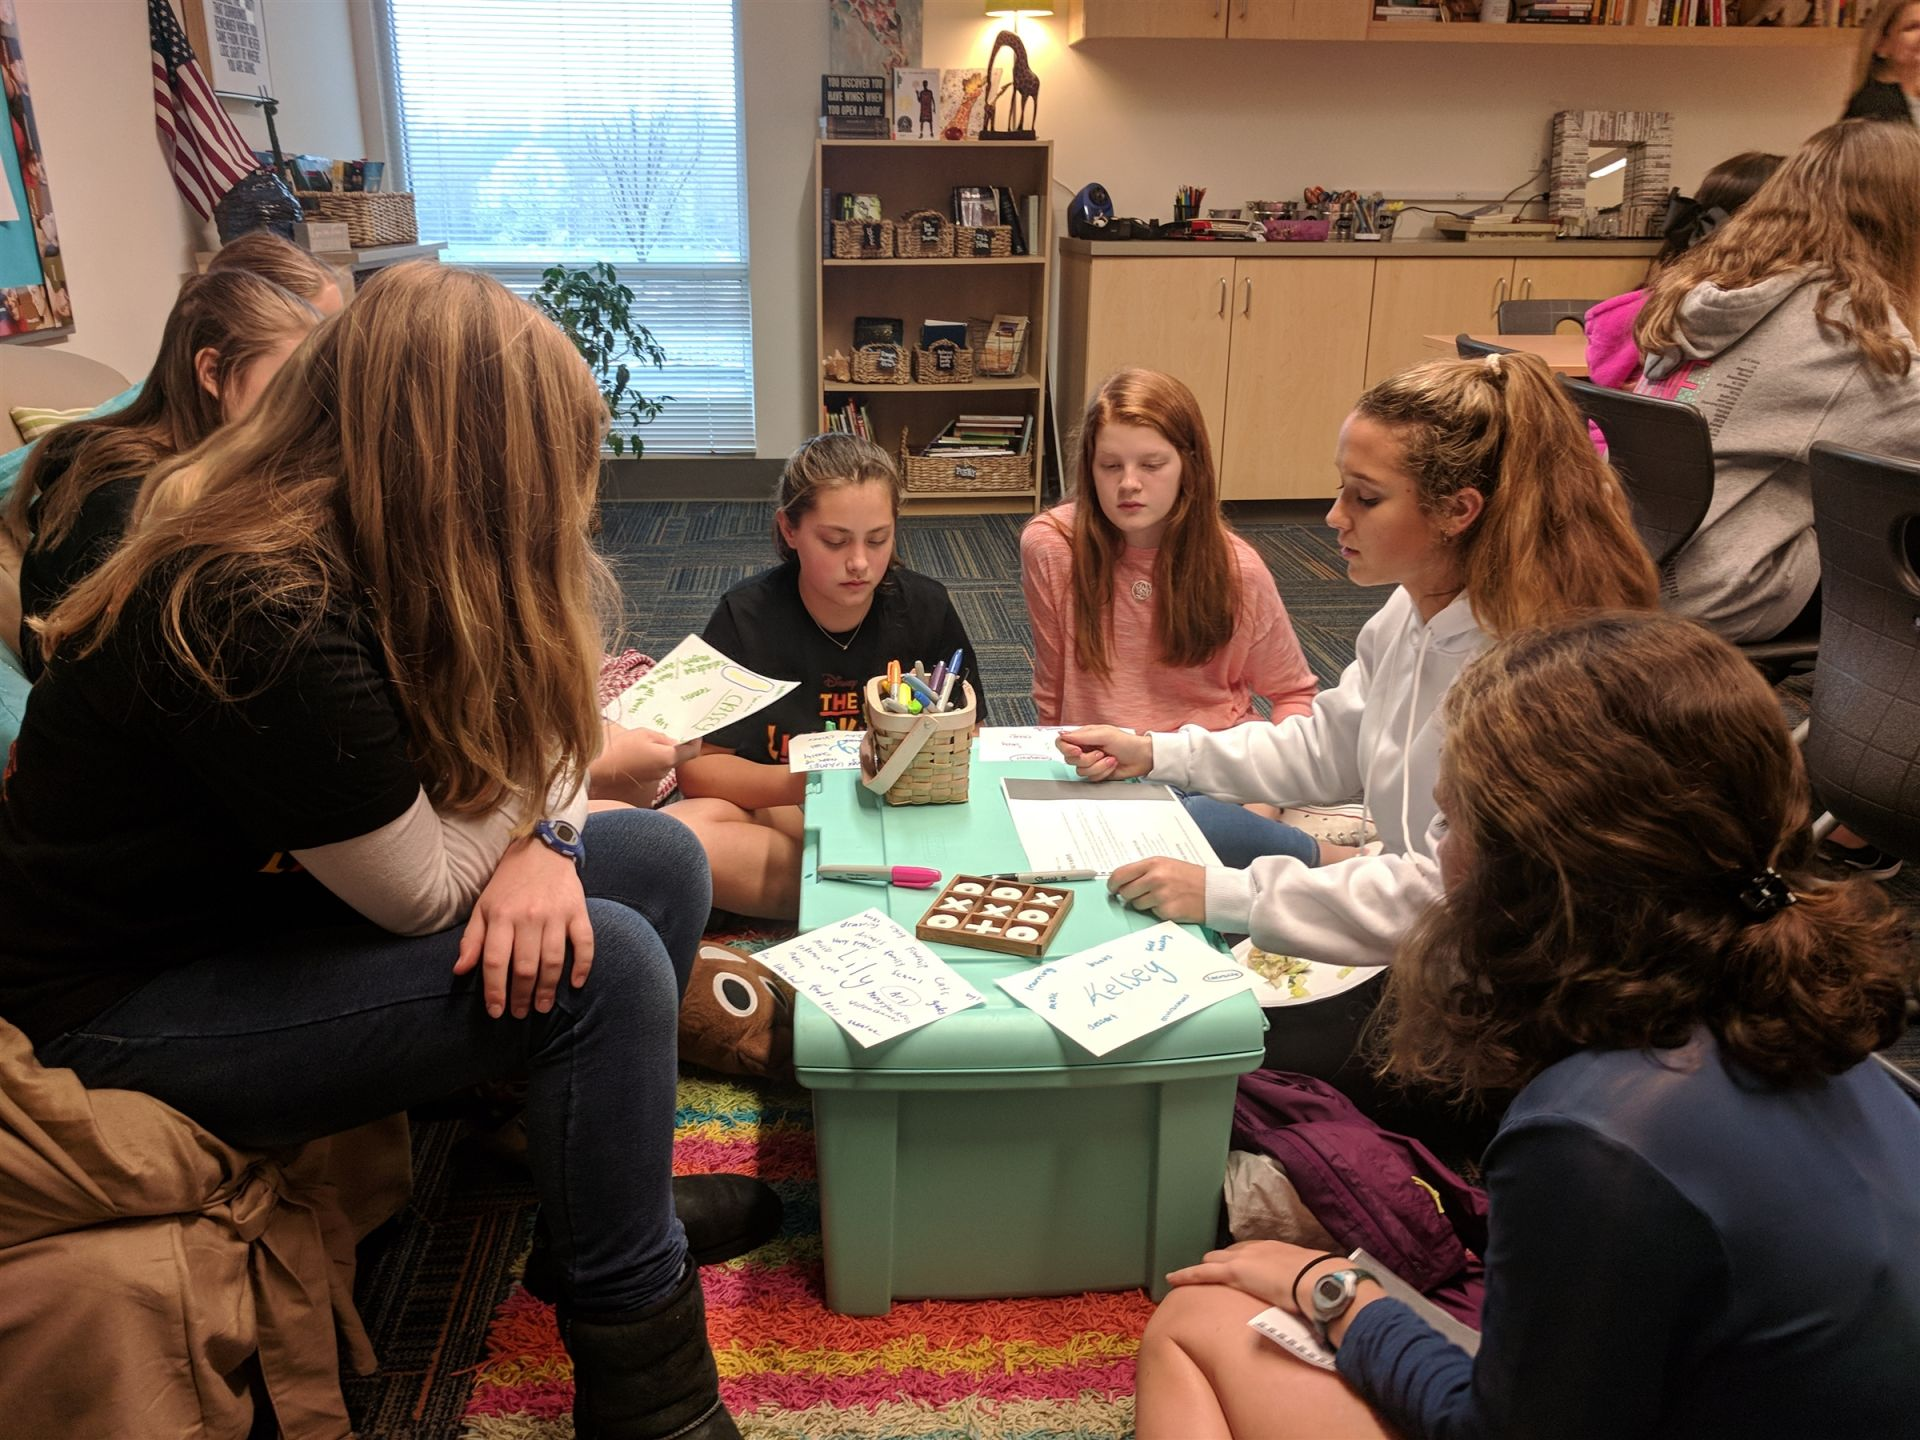 Our Middle School counselor provides social and emotional support, and programming for the Middle School community. Working with students in the classroom, in groups, and individually creates easy access and a comforting environment.